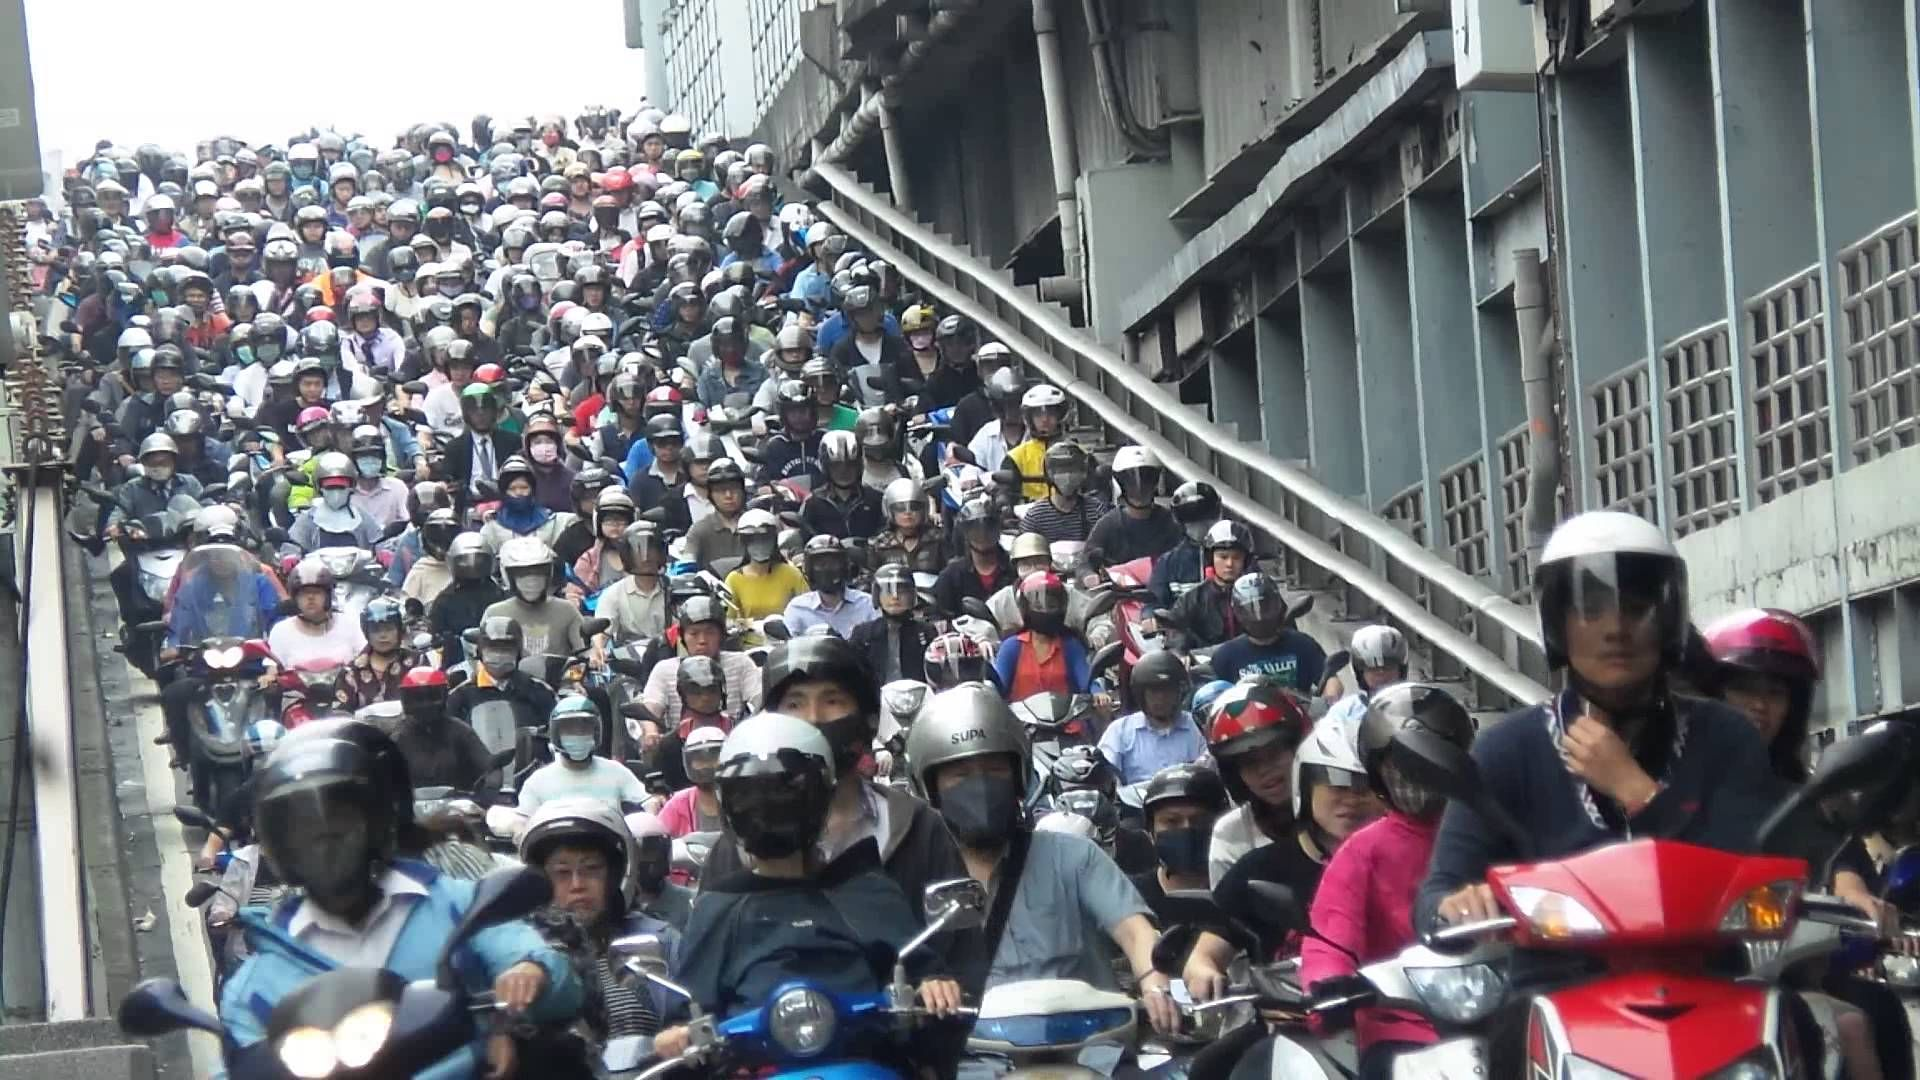 Incredibly Heavy Scooter Traffic During a Morning Rush Hour in Taiwan